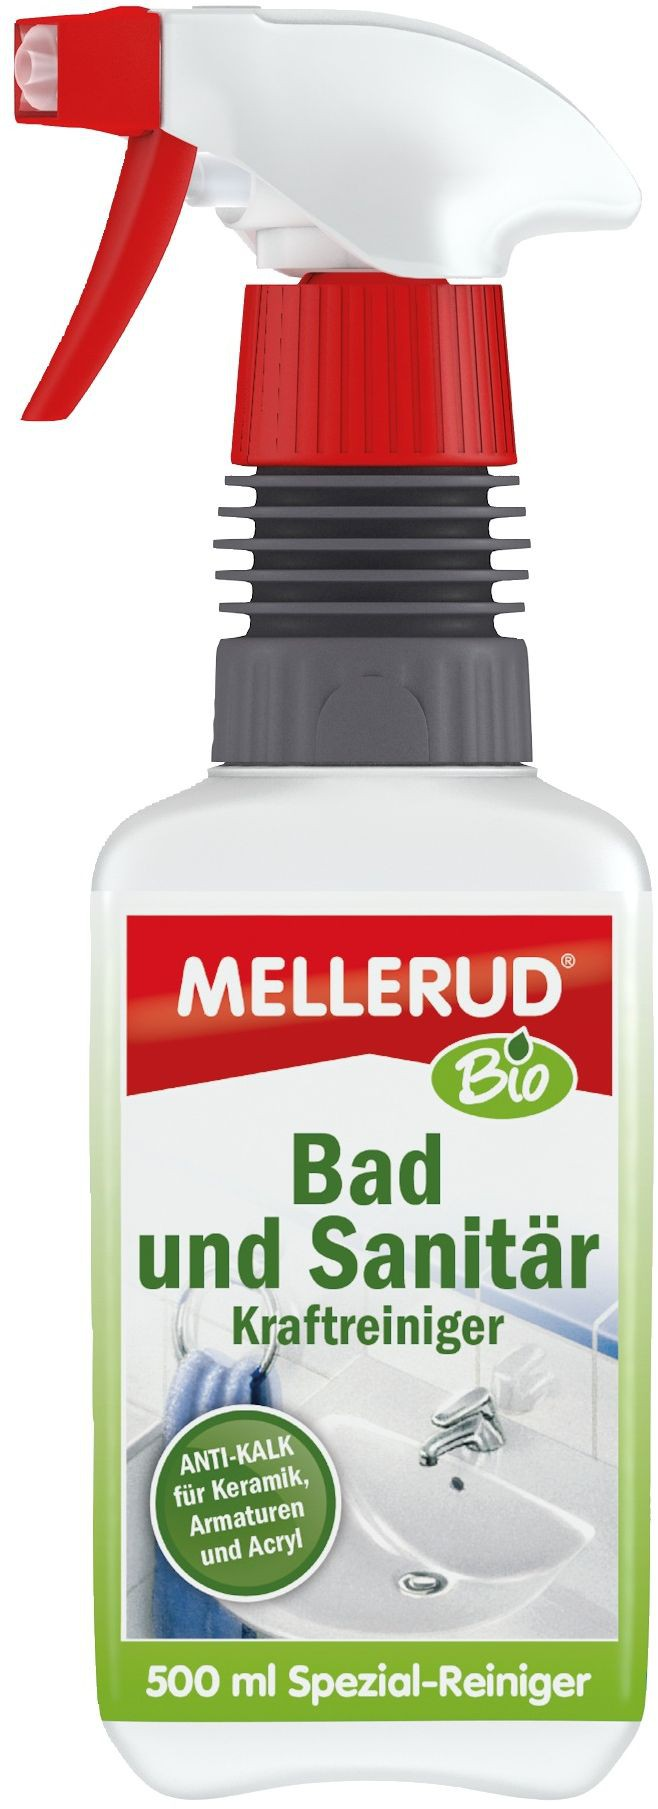 mellerud bio bad und sanit r kraftreiniger 500 ml spr hflasche online kaufen. Black Bedroom Furniture Sets. Home Design Ideas